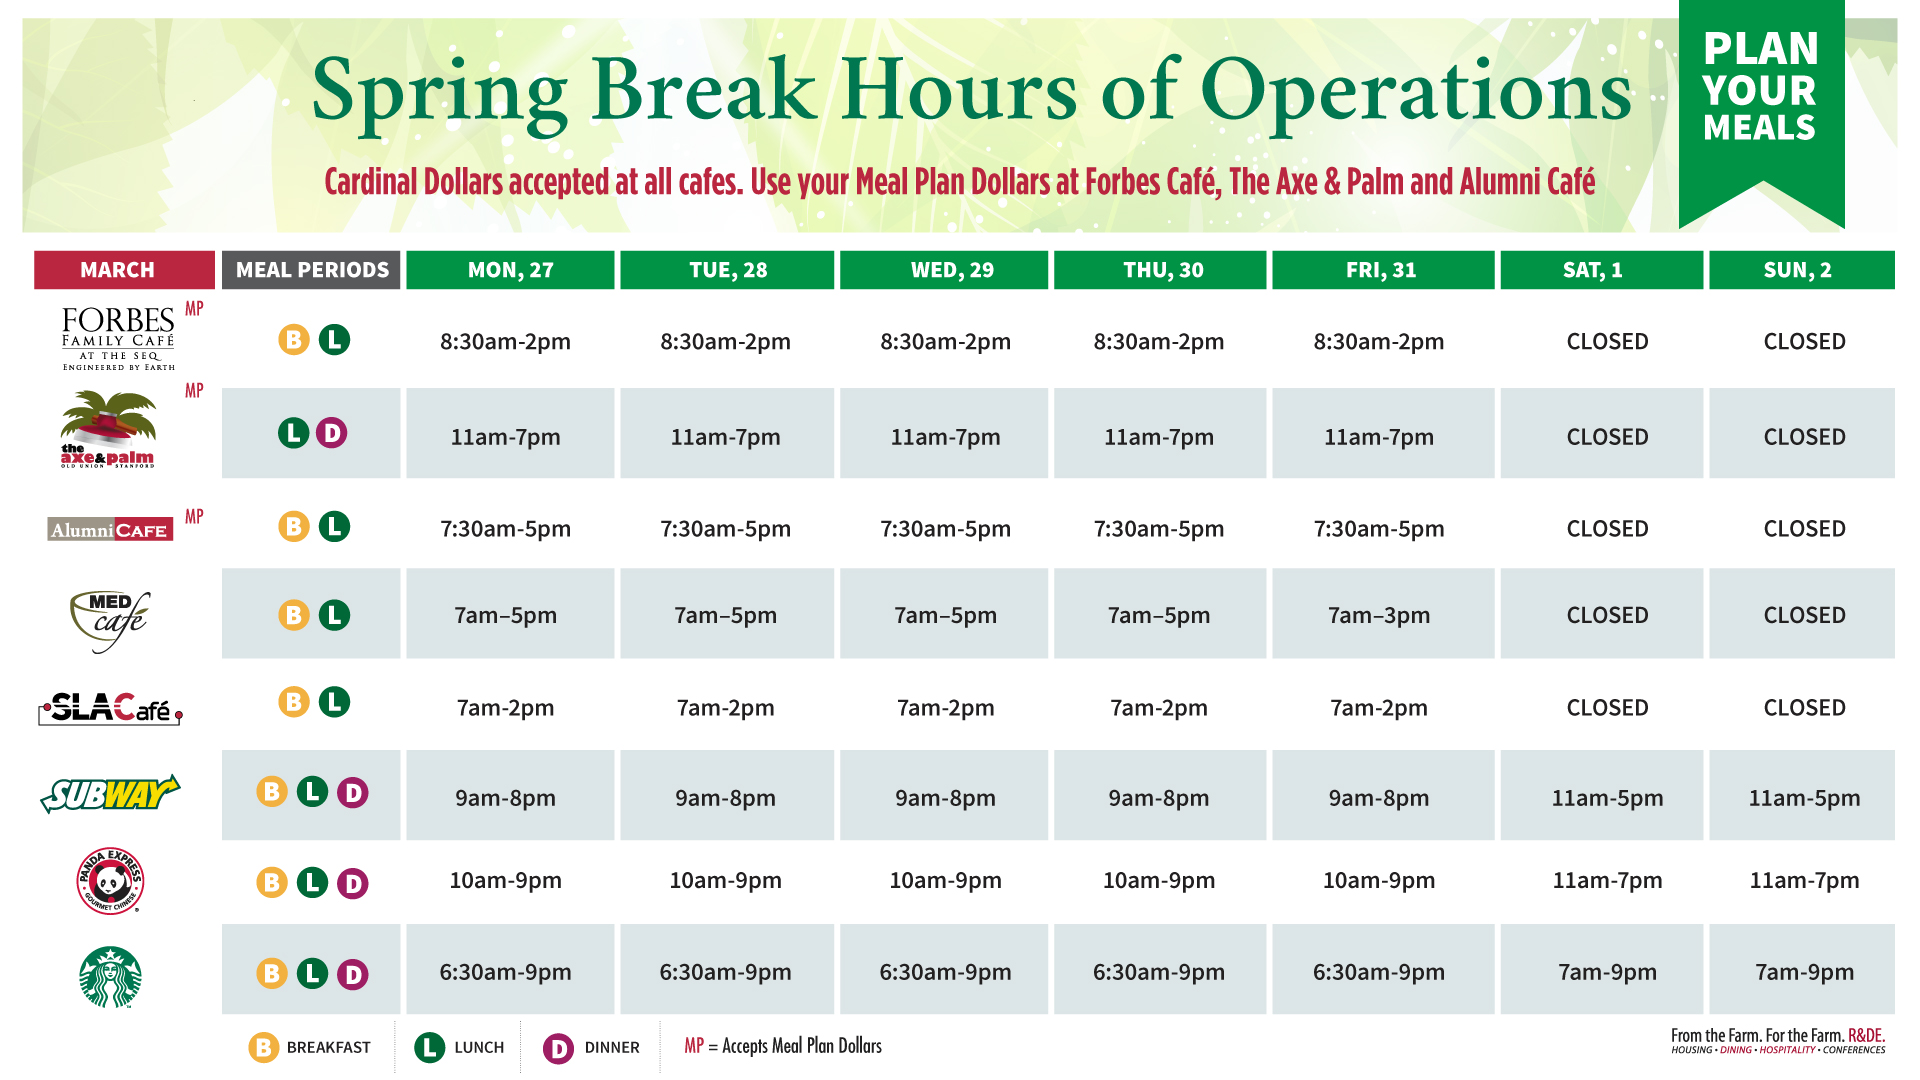 graphic for spring break hours